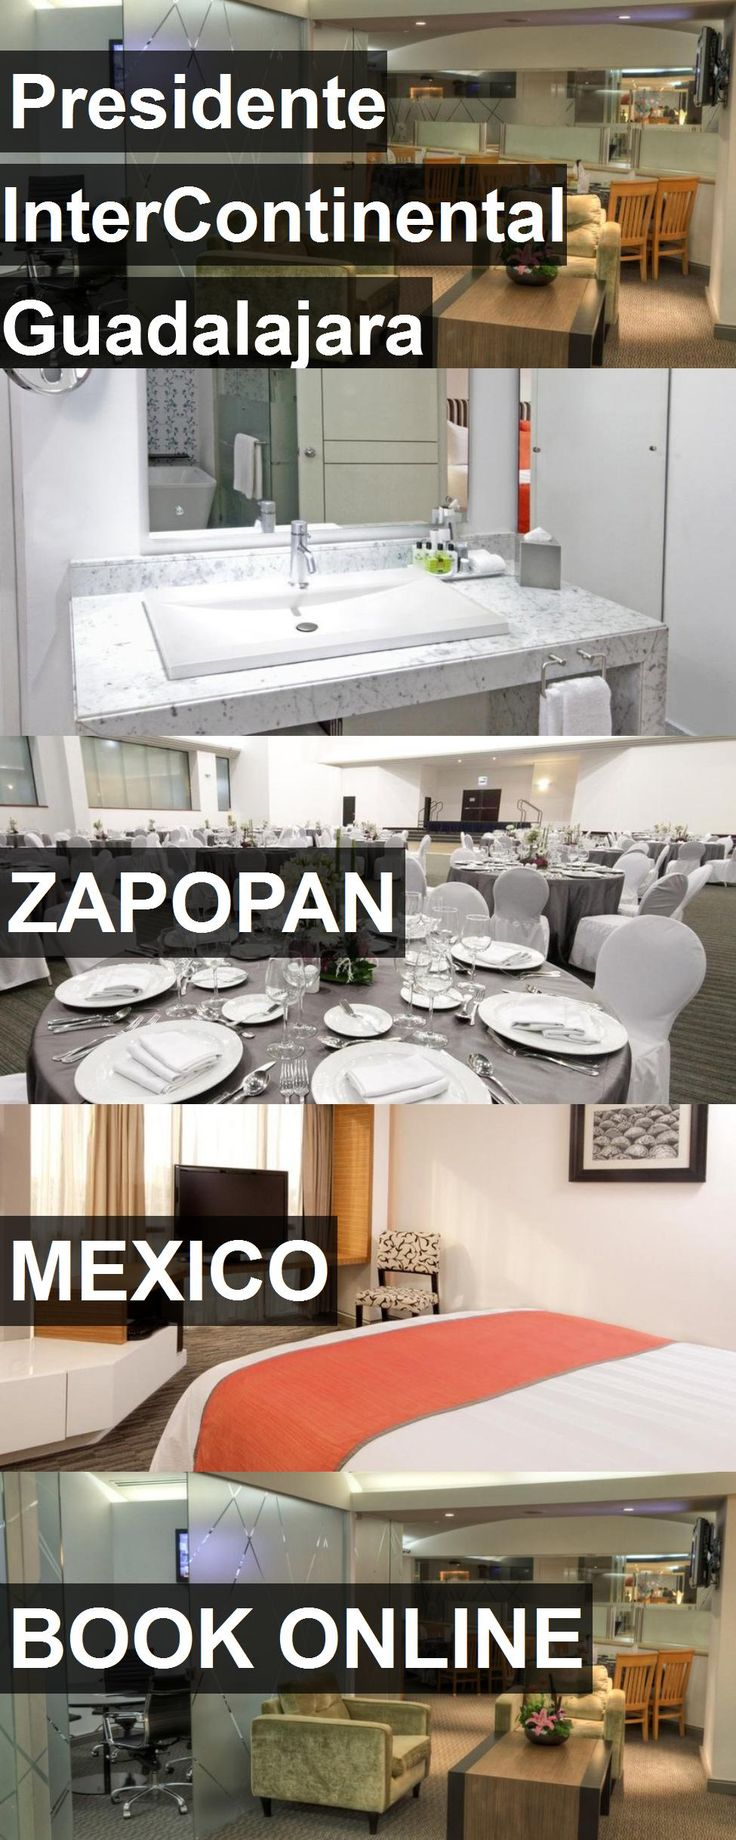 Hotel Presidente InterContinental Guadalajara in Zapopan, Mexico. For more information, photos, reviews and best prices please follow the link. #Mexico #Zapopan #travel #vacation #hotel